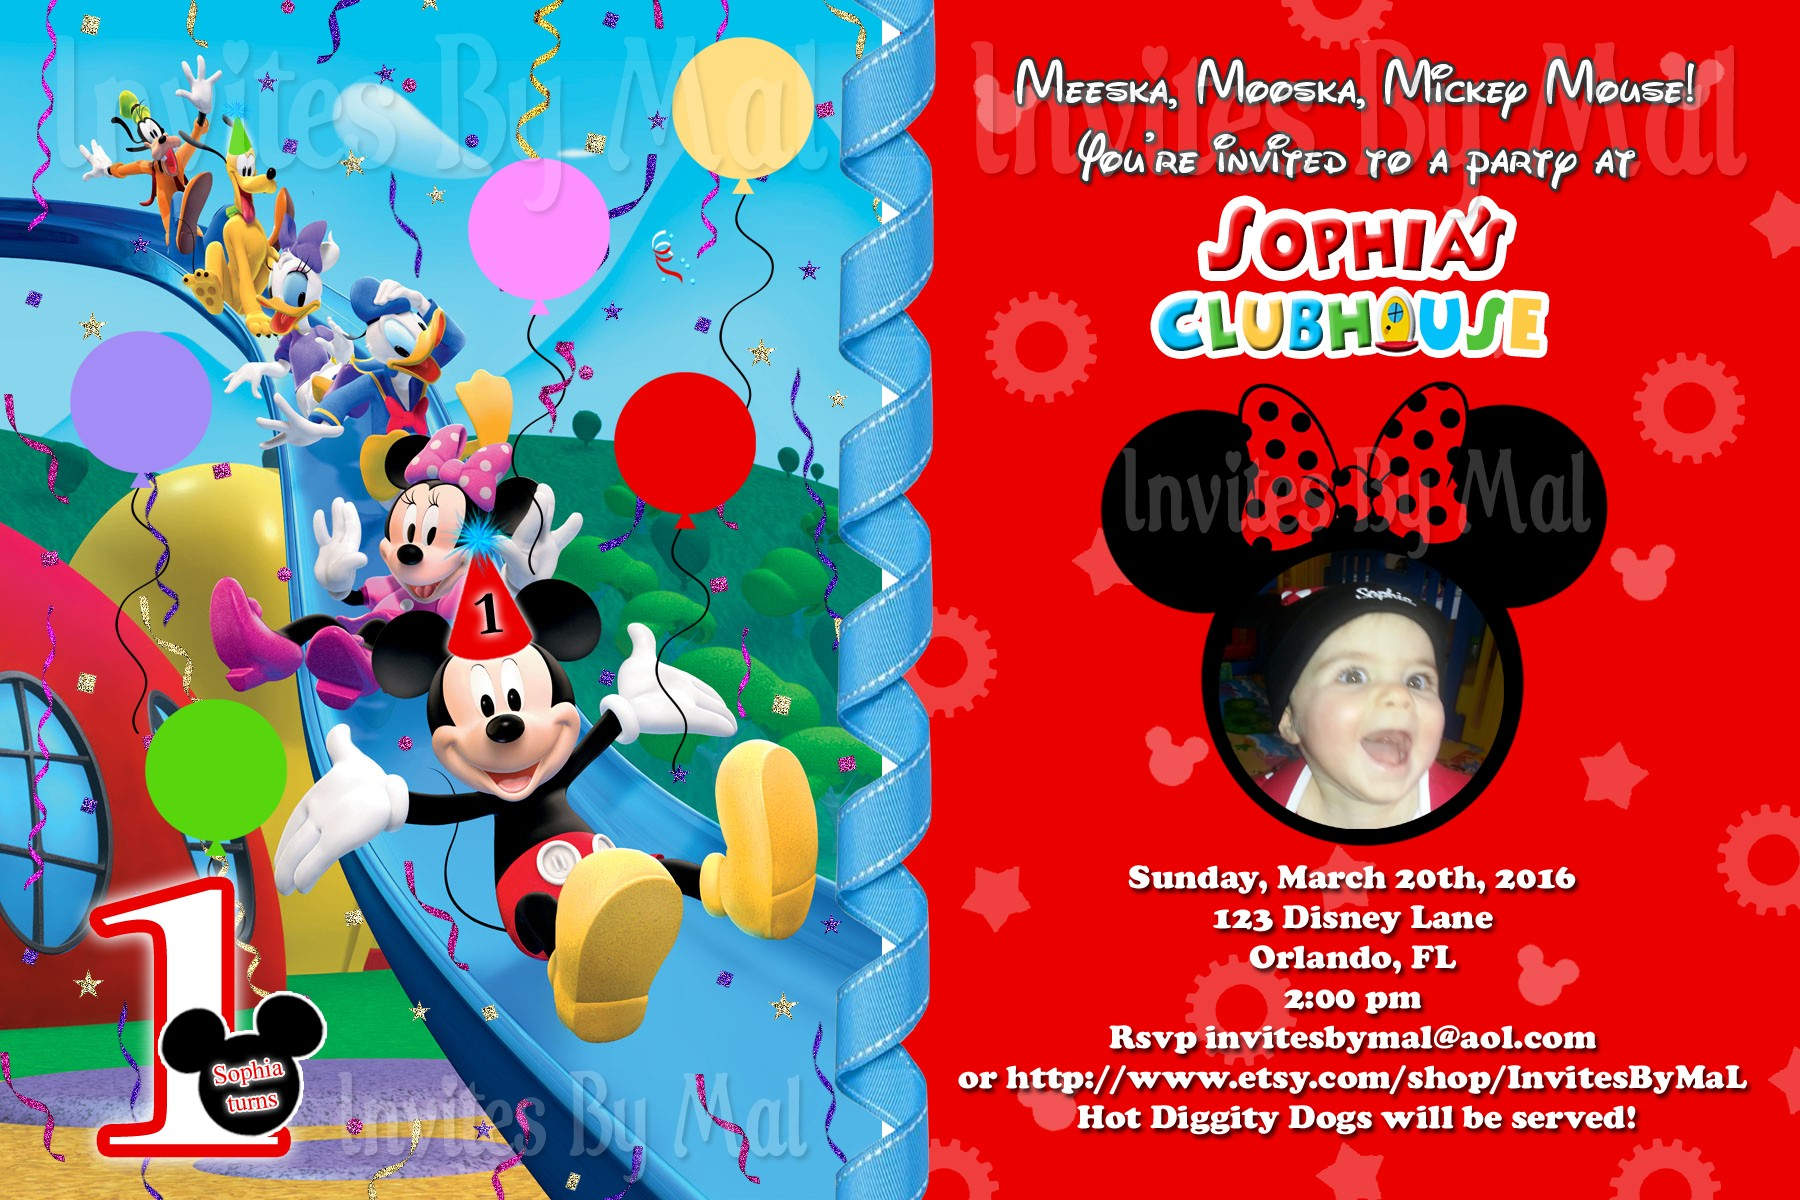 free printable mickey mouse 1st birthday invitations ; invitation-wording-for-mickey-mouse-party-save-free-printable-mickey-mouse-1st-birthday-invitations-template-of-invitation-wording-for-mickey-mouse-party